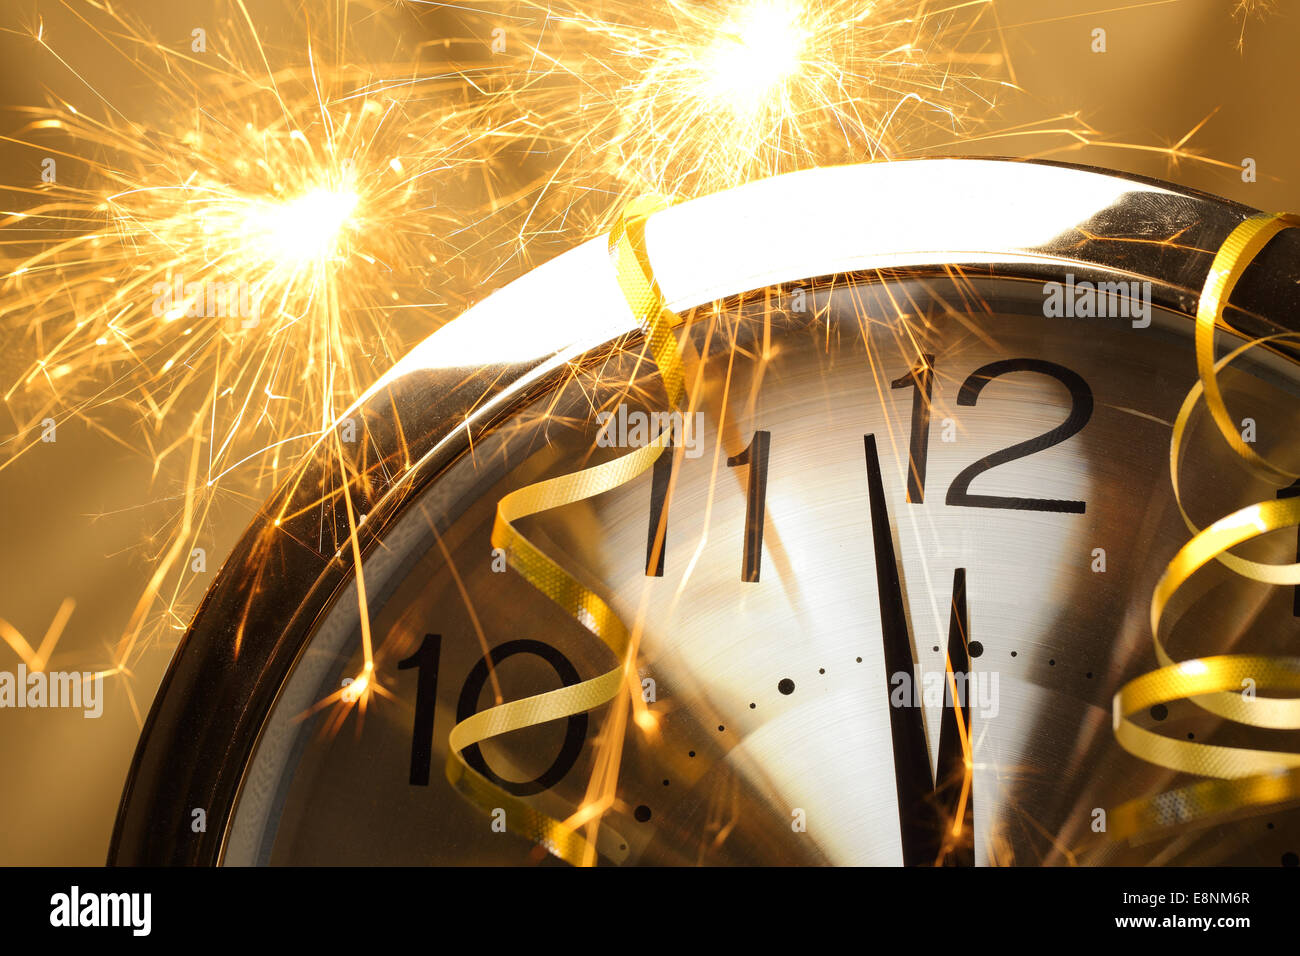 New year clock with fireworks Stock Photo  74235583   Alamy New year clock with fireworks